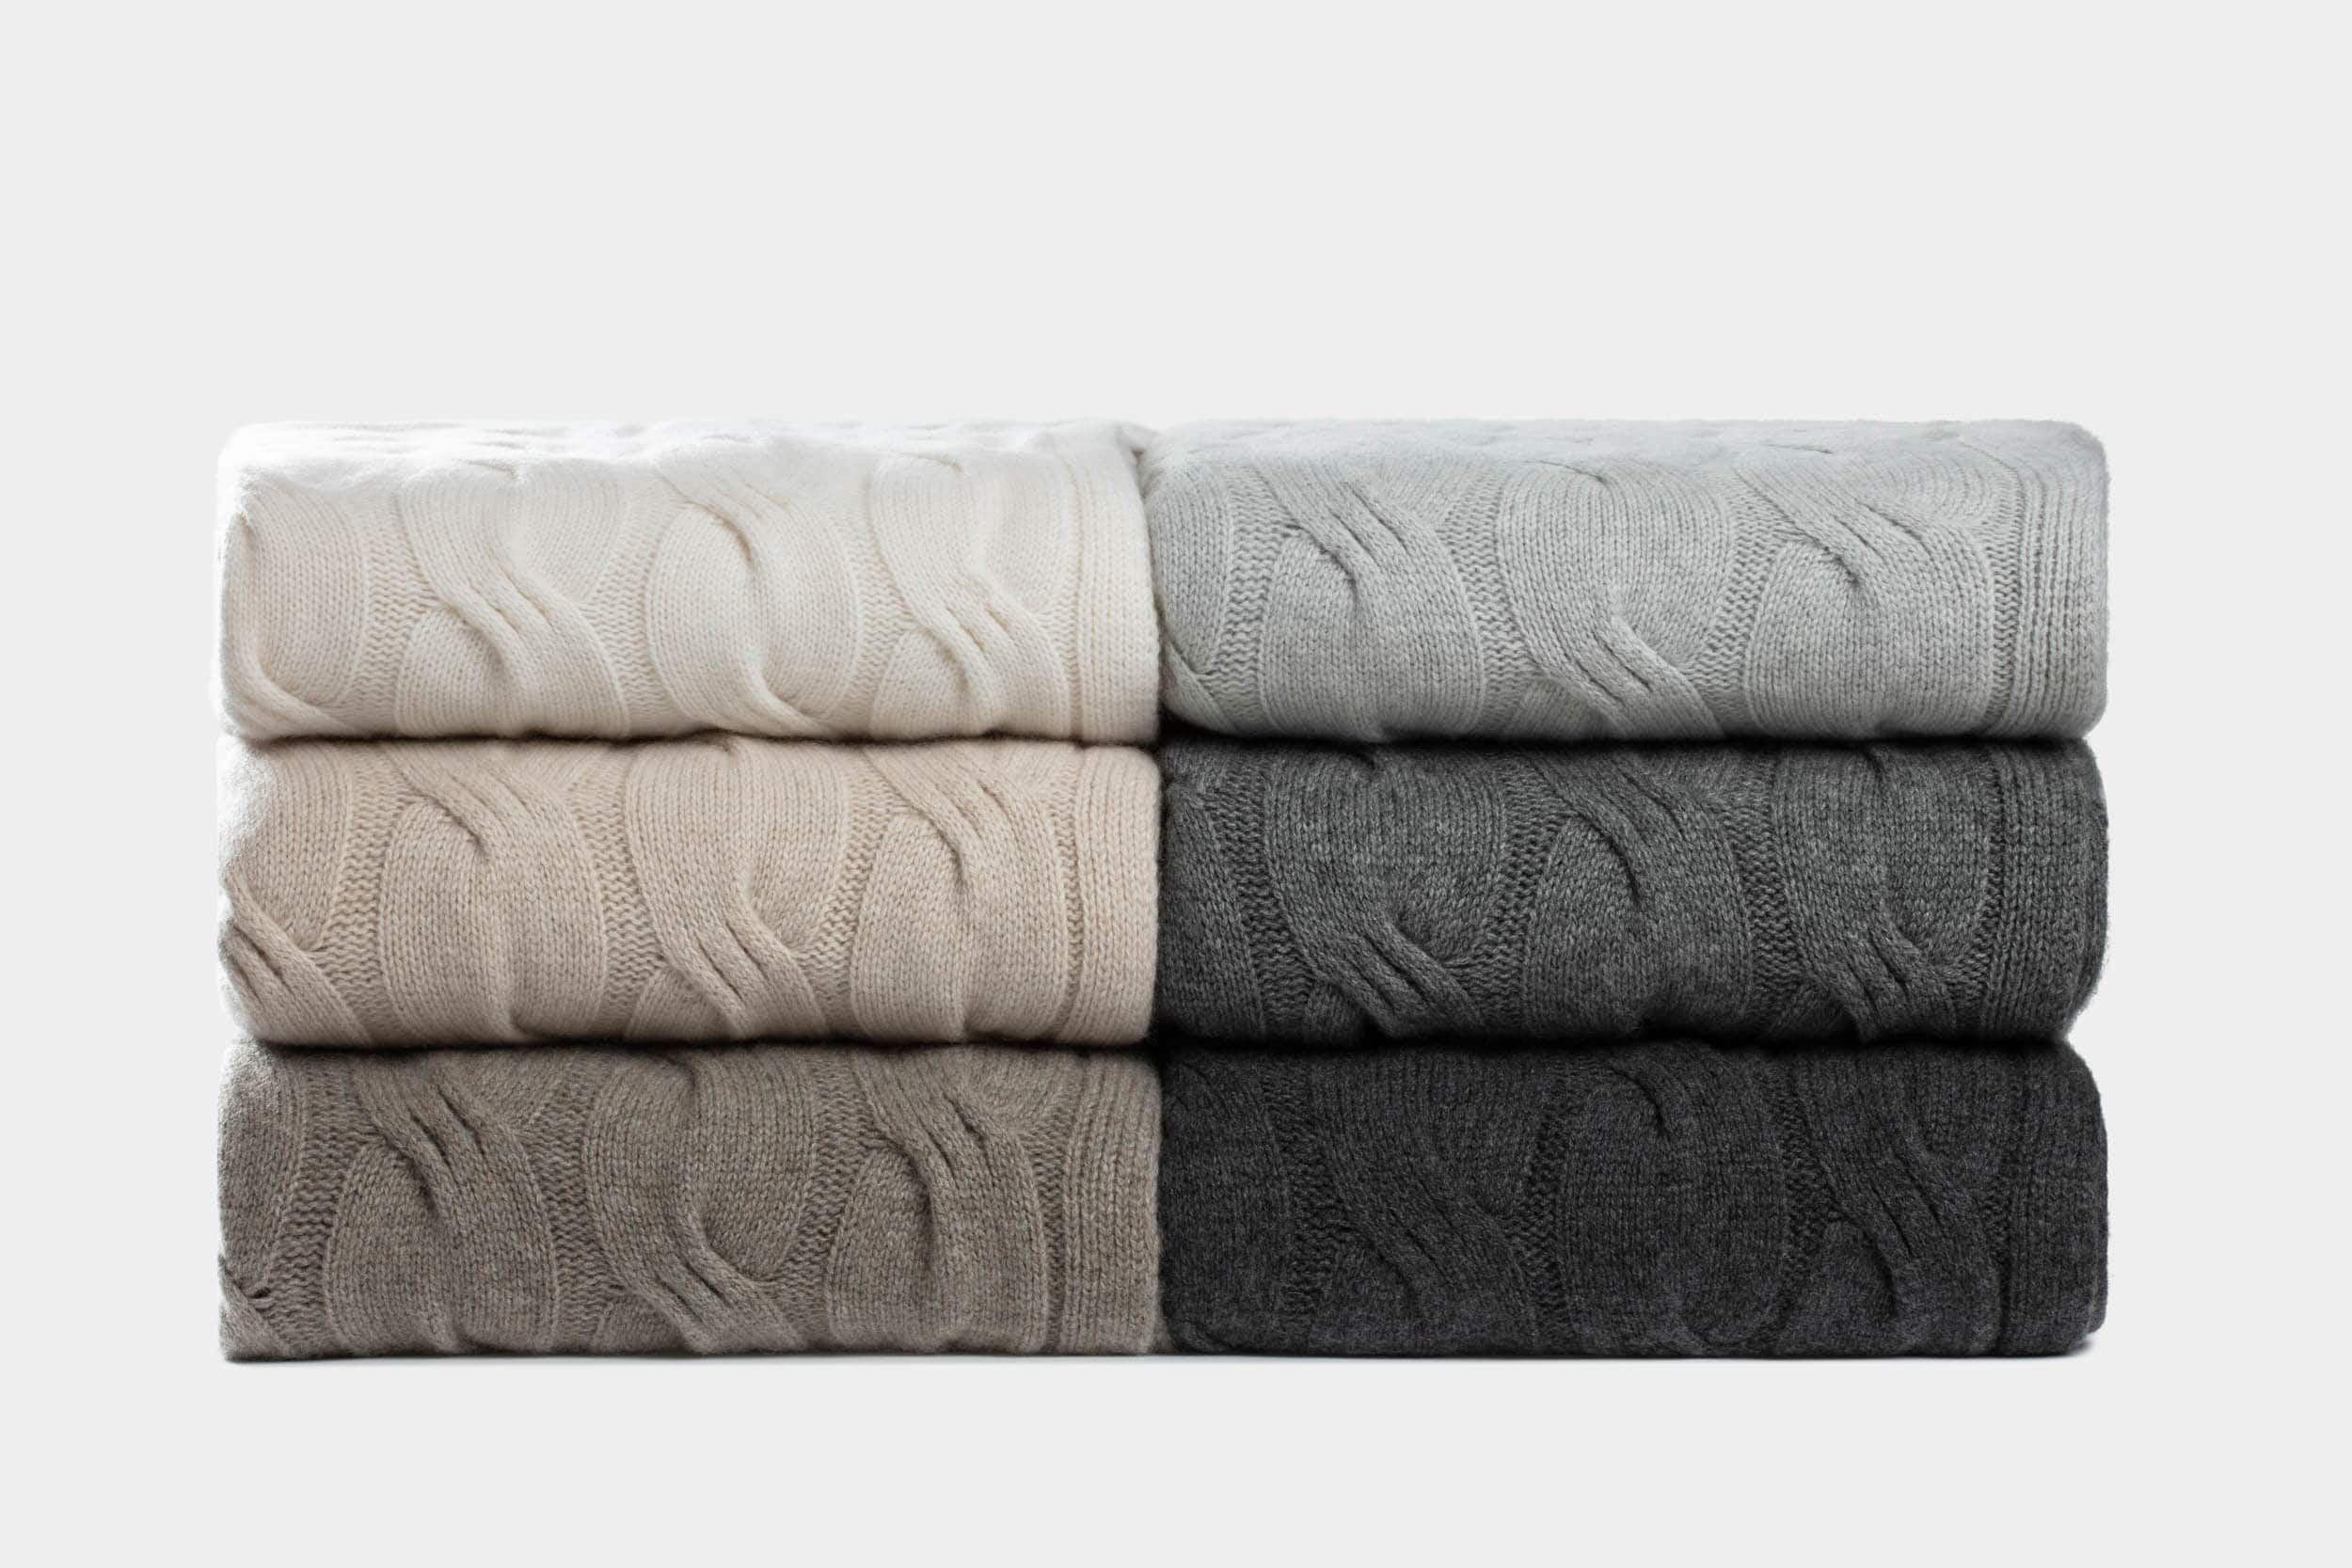 italian cashmere blankets and throws